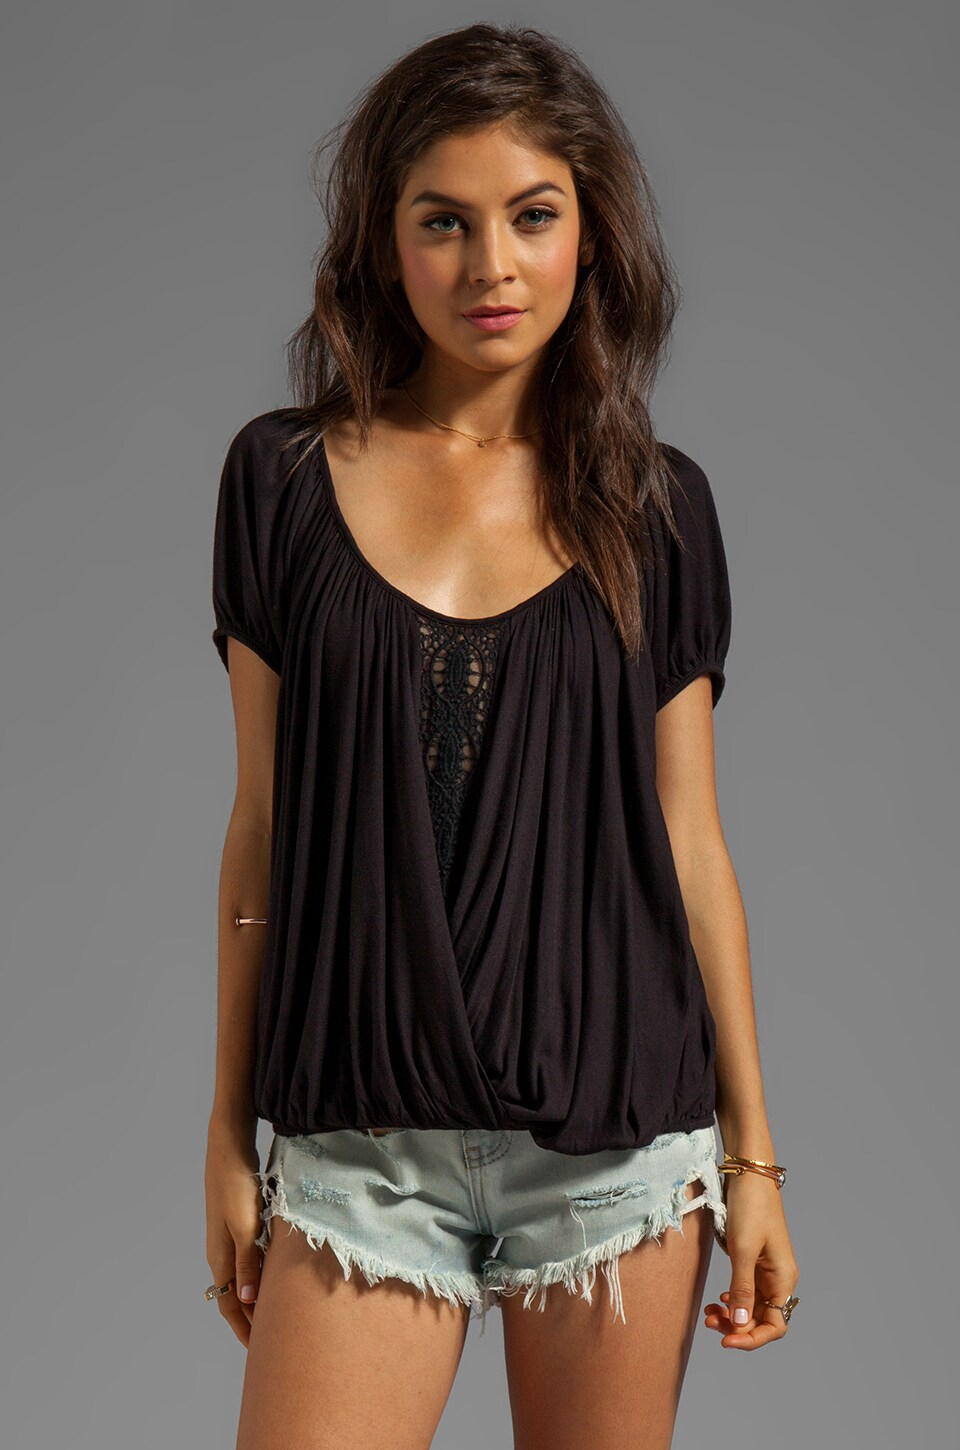 Free People Ann's Ruched Top in Black